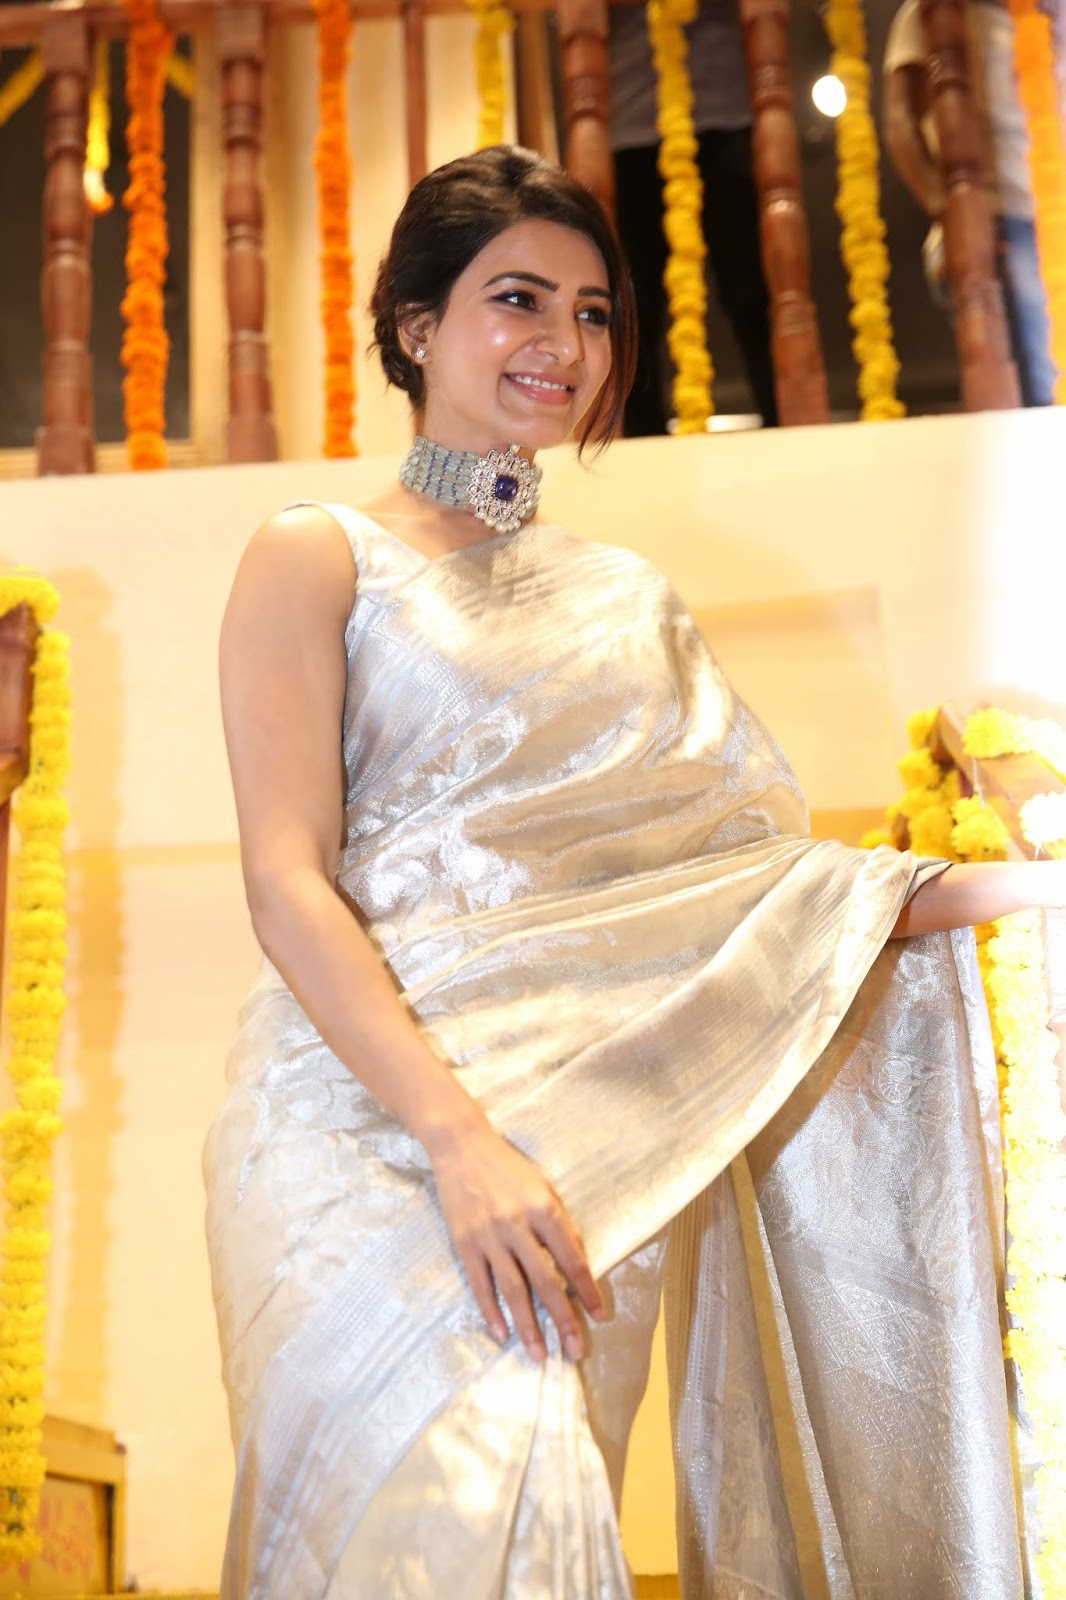 Samantha Akkineni Shines Like A Princess In White Hot Saree In Recent Event